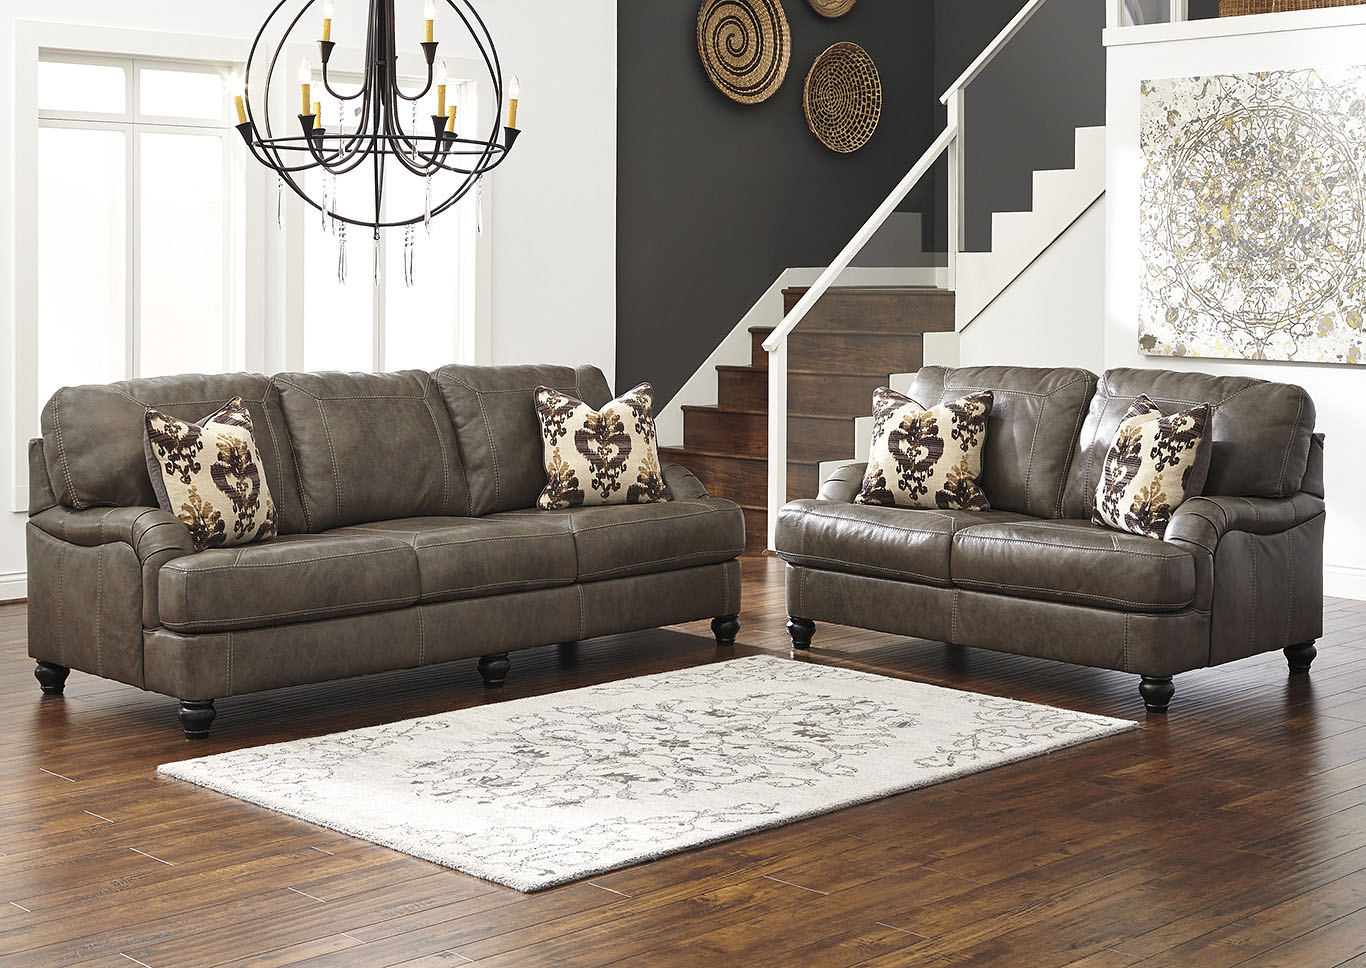 Kannerdy Quarry Sofa and Loveseat,Signature Design By Ashley